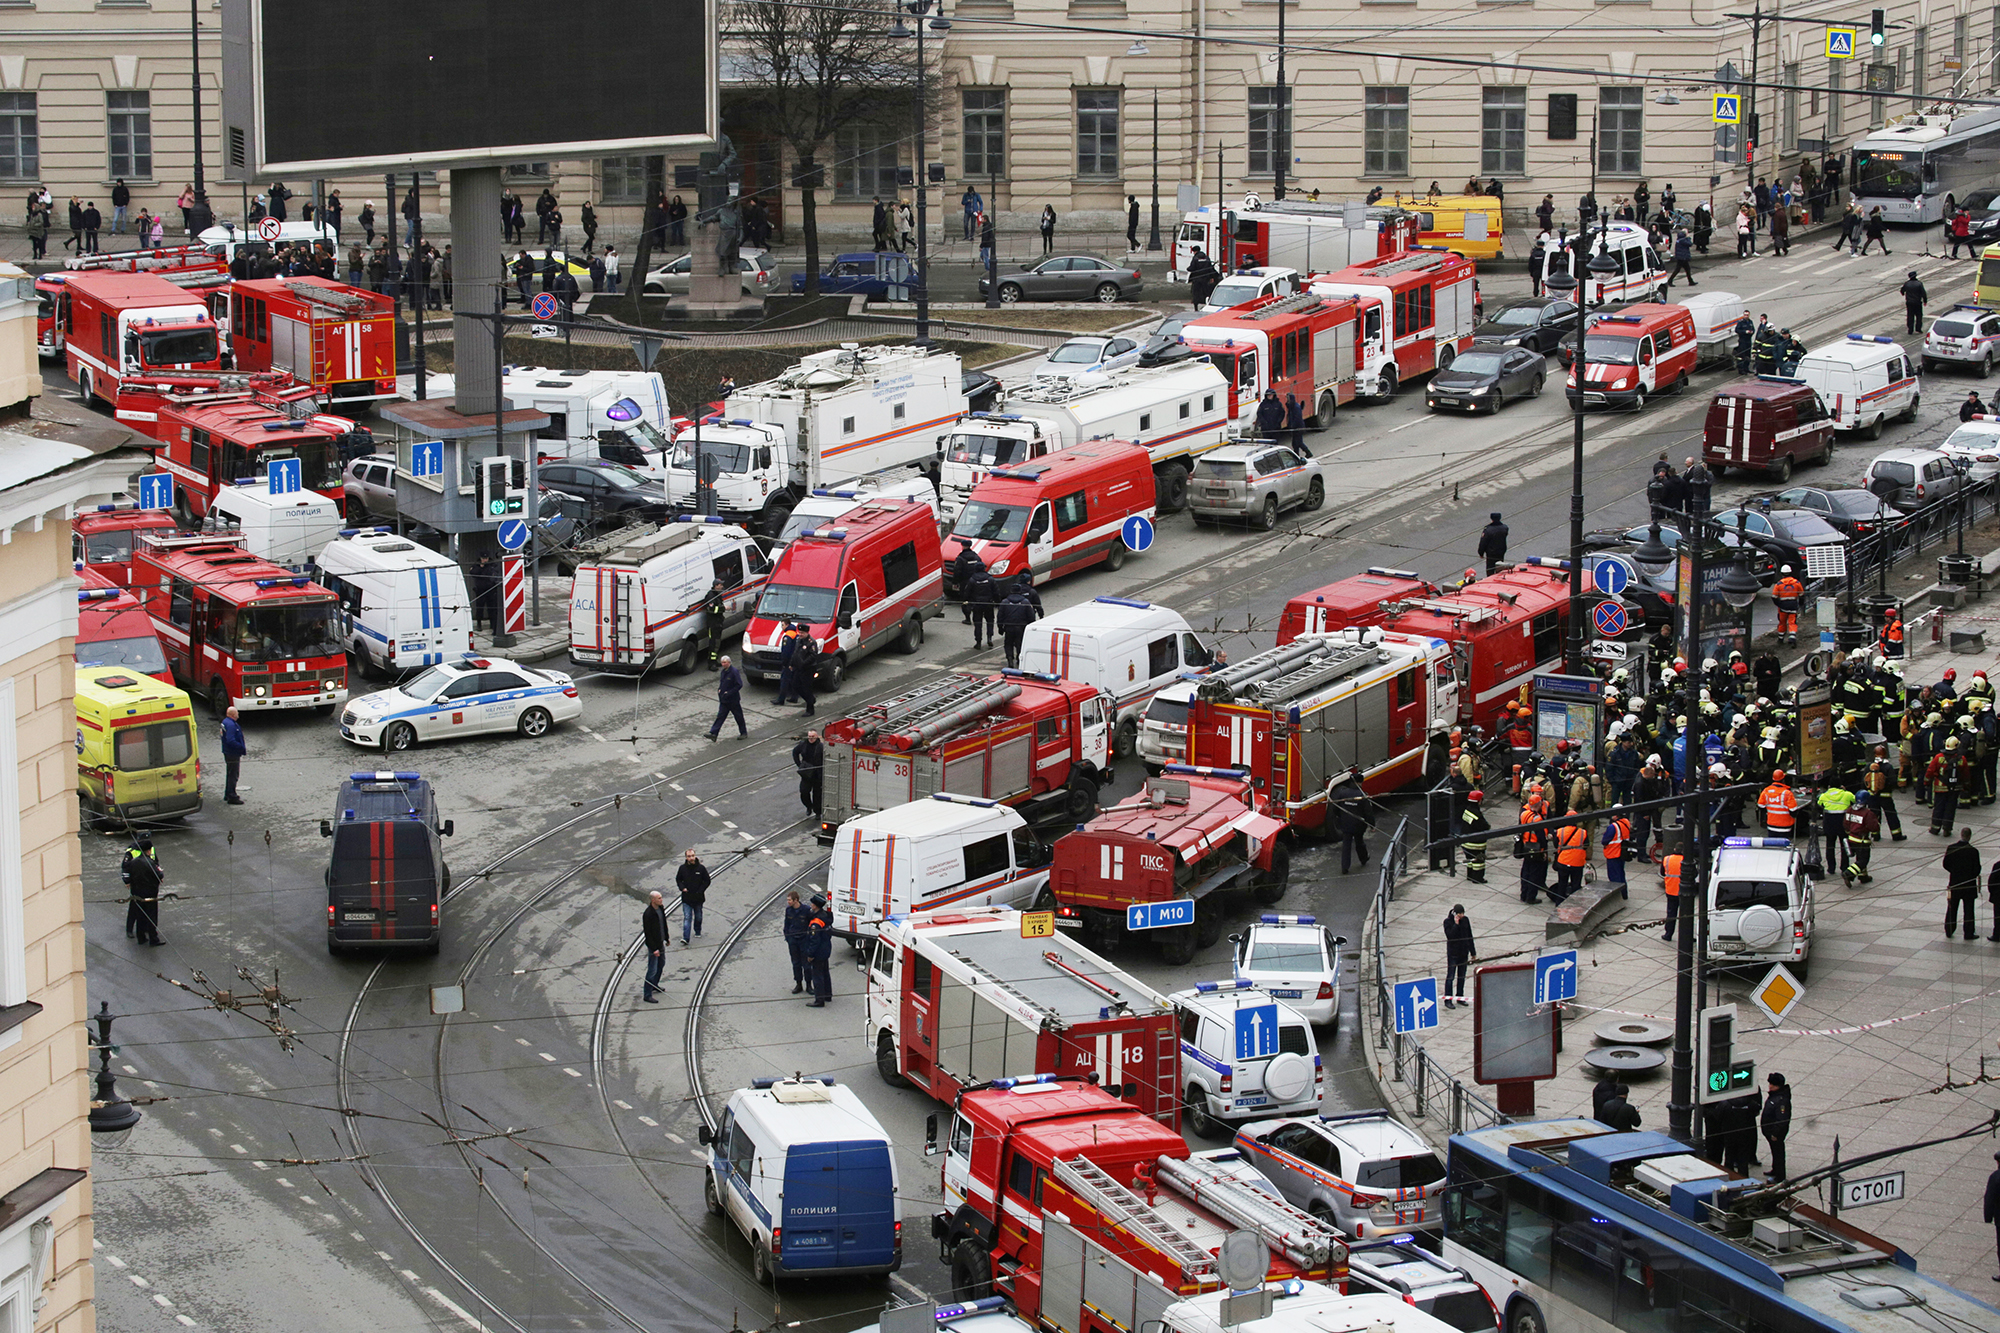 Emergency services attend the scene following explosions in two train carriages in St. Petersburg, Russia, on April 3, 2017.